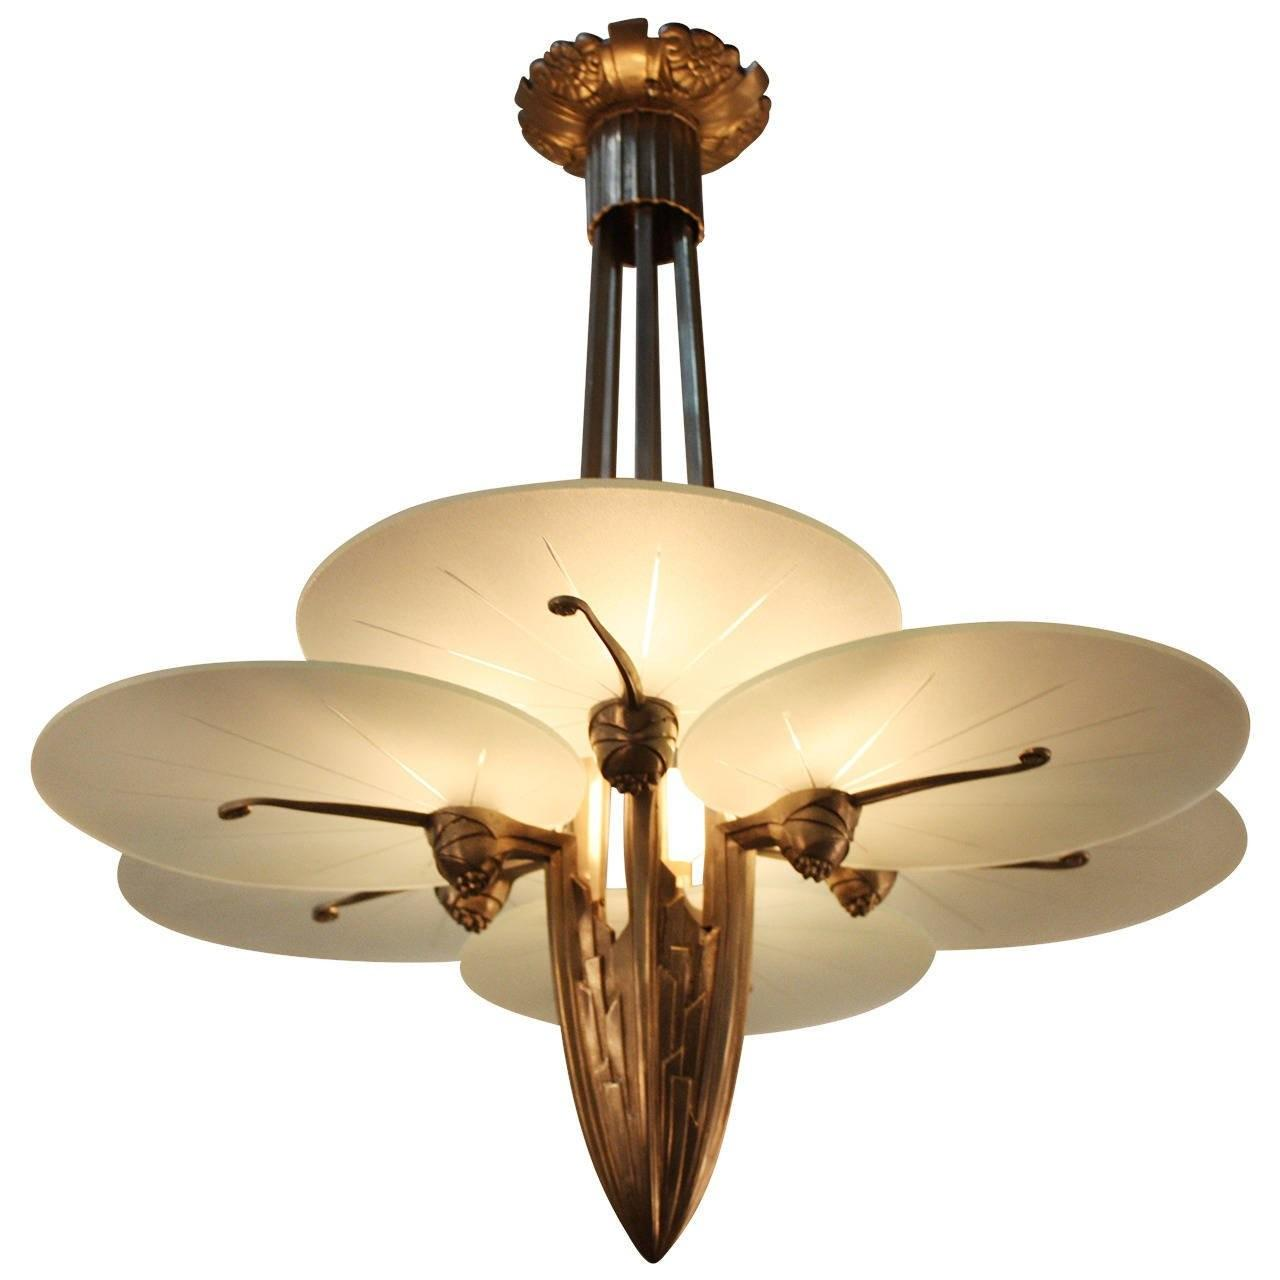 Unique Art Deco Chandelier 1stdibs